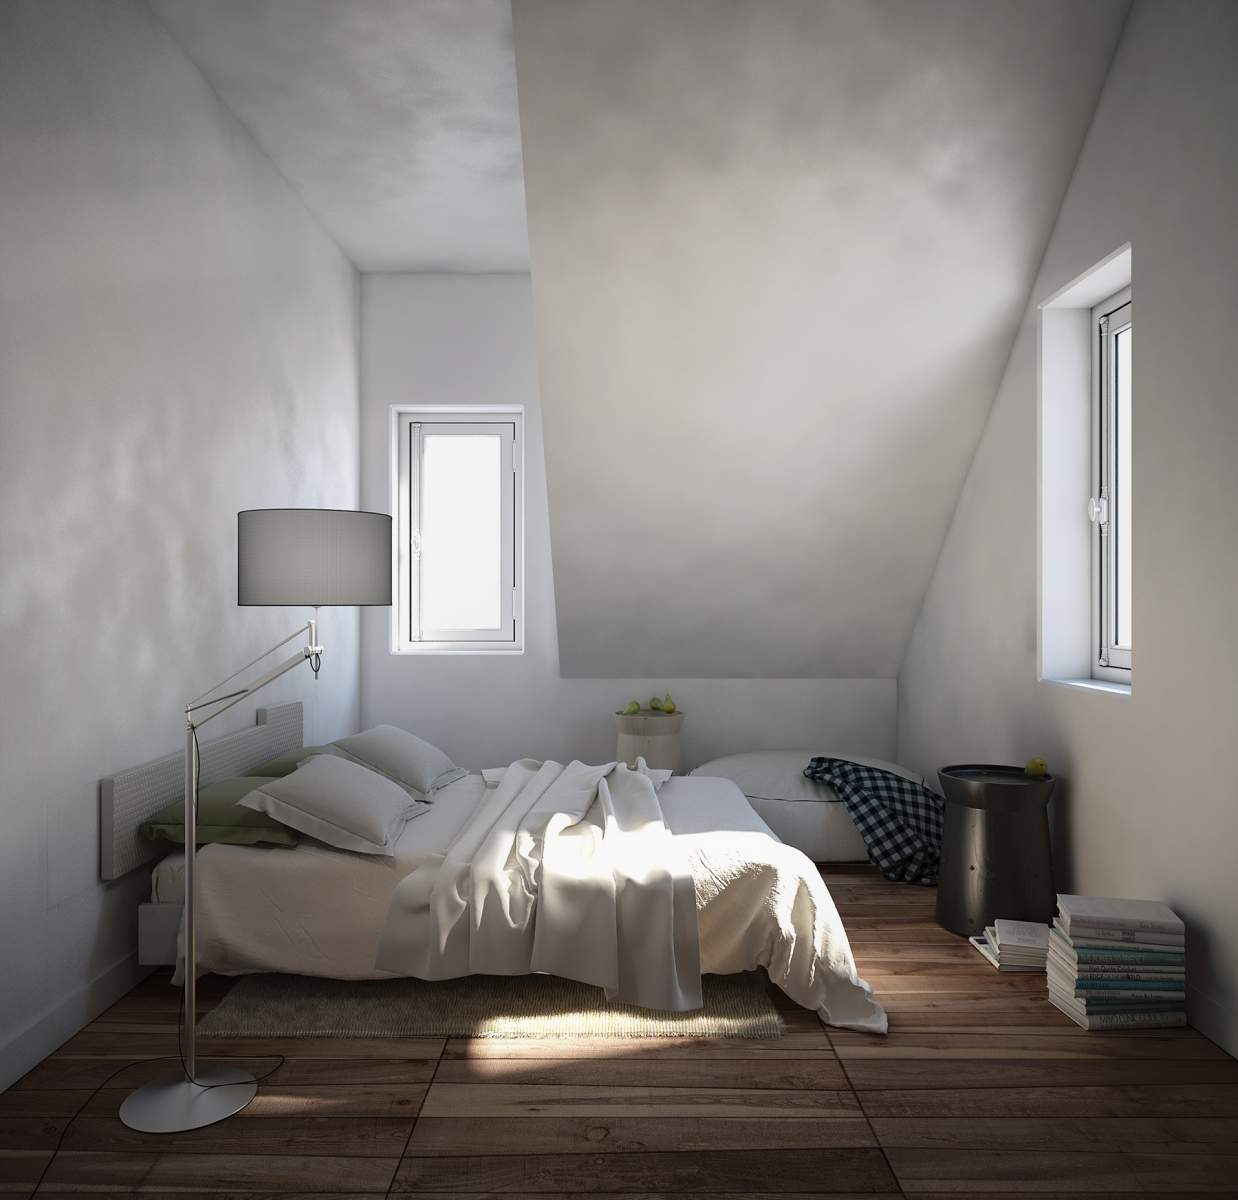 Small bedroom02